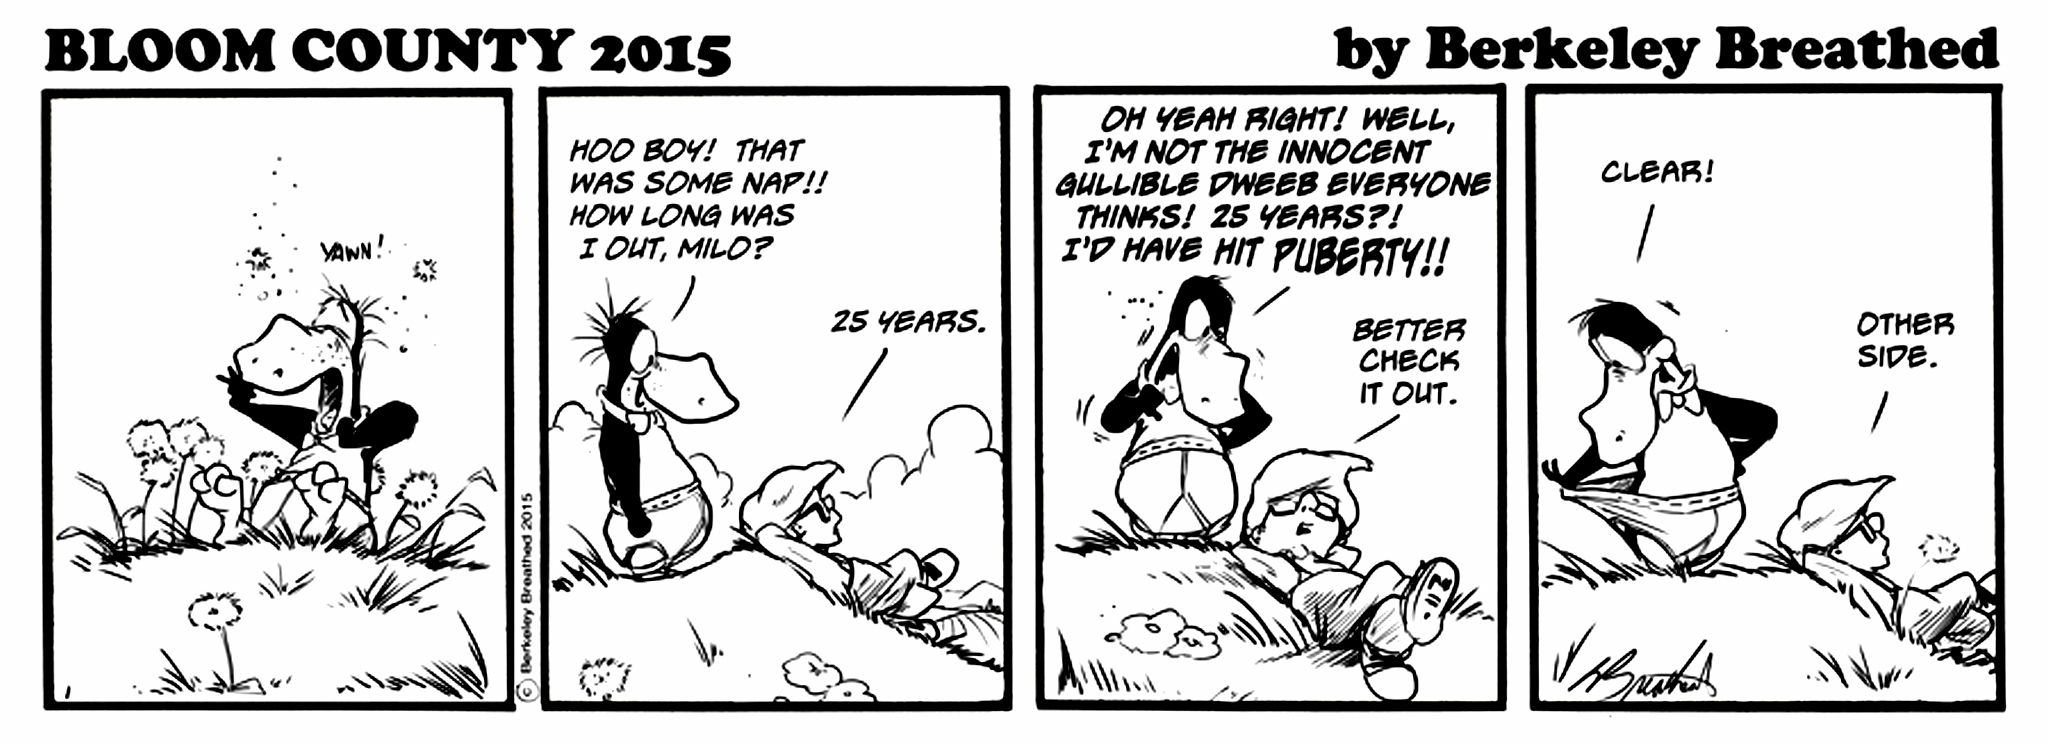 Bloom County 2015 - 07-13 - Monday